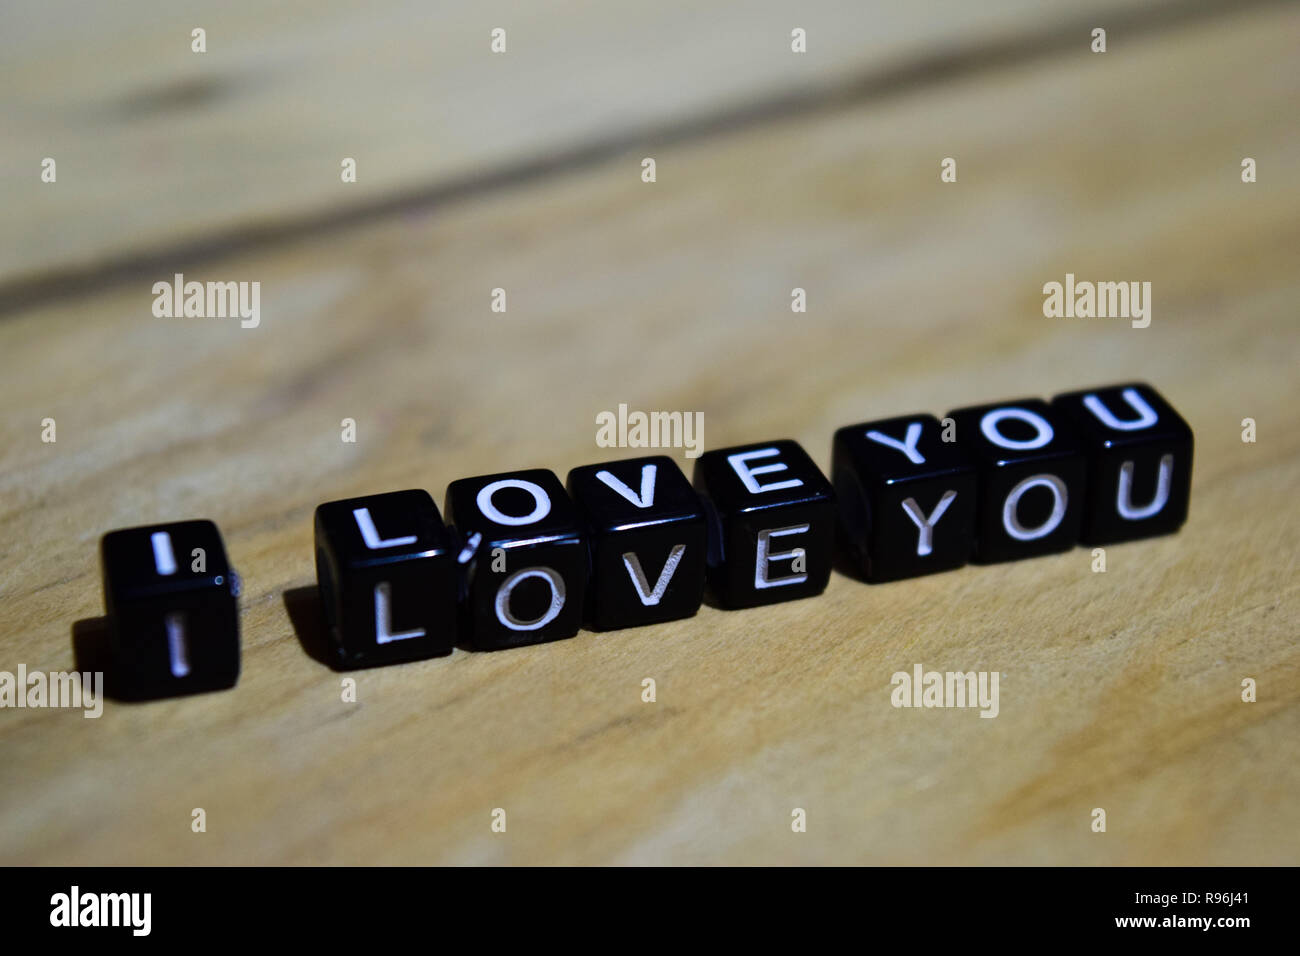 I love you written on wooden blocks. Inspiration and motivation concepts. Cross processed image on Wooden Background Stock Photo